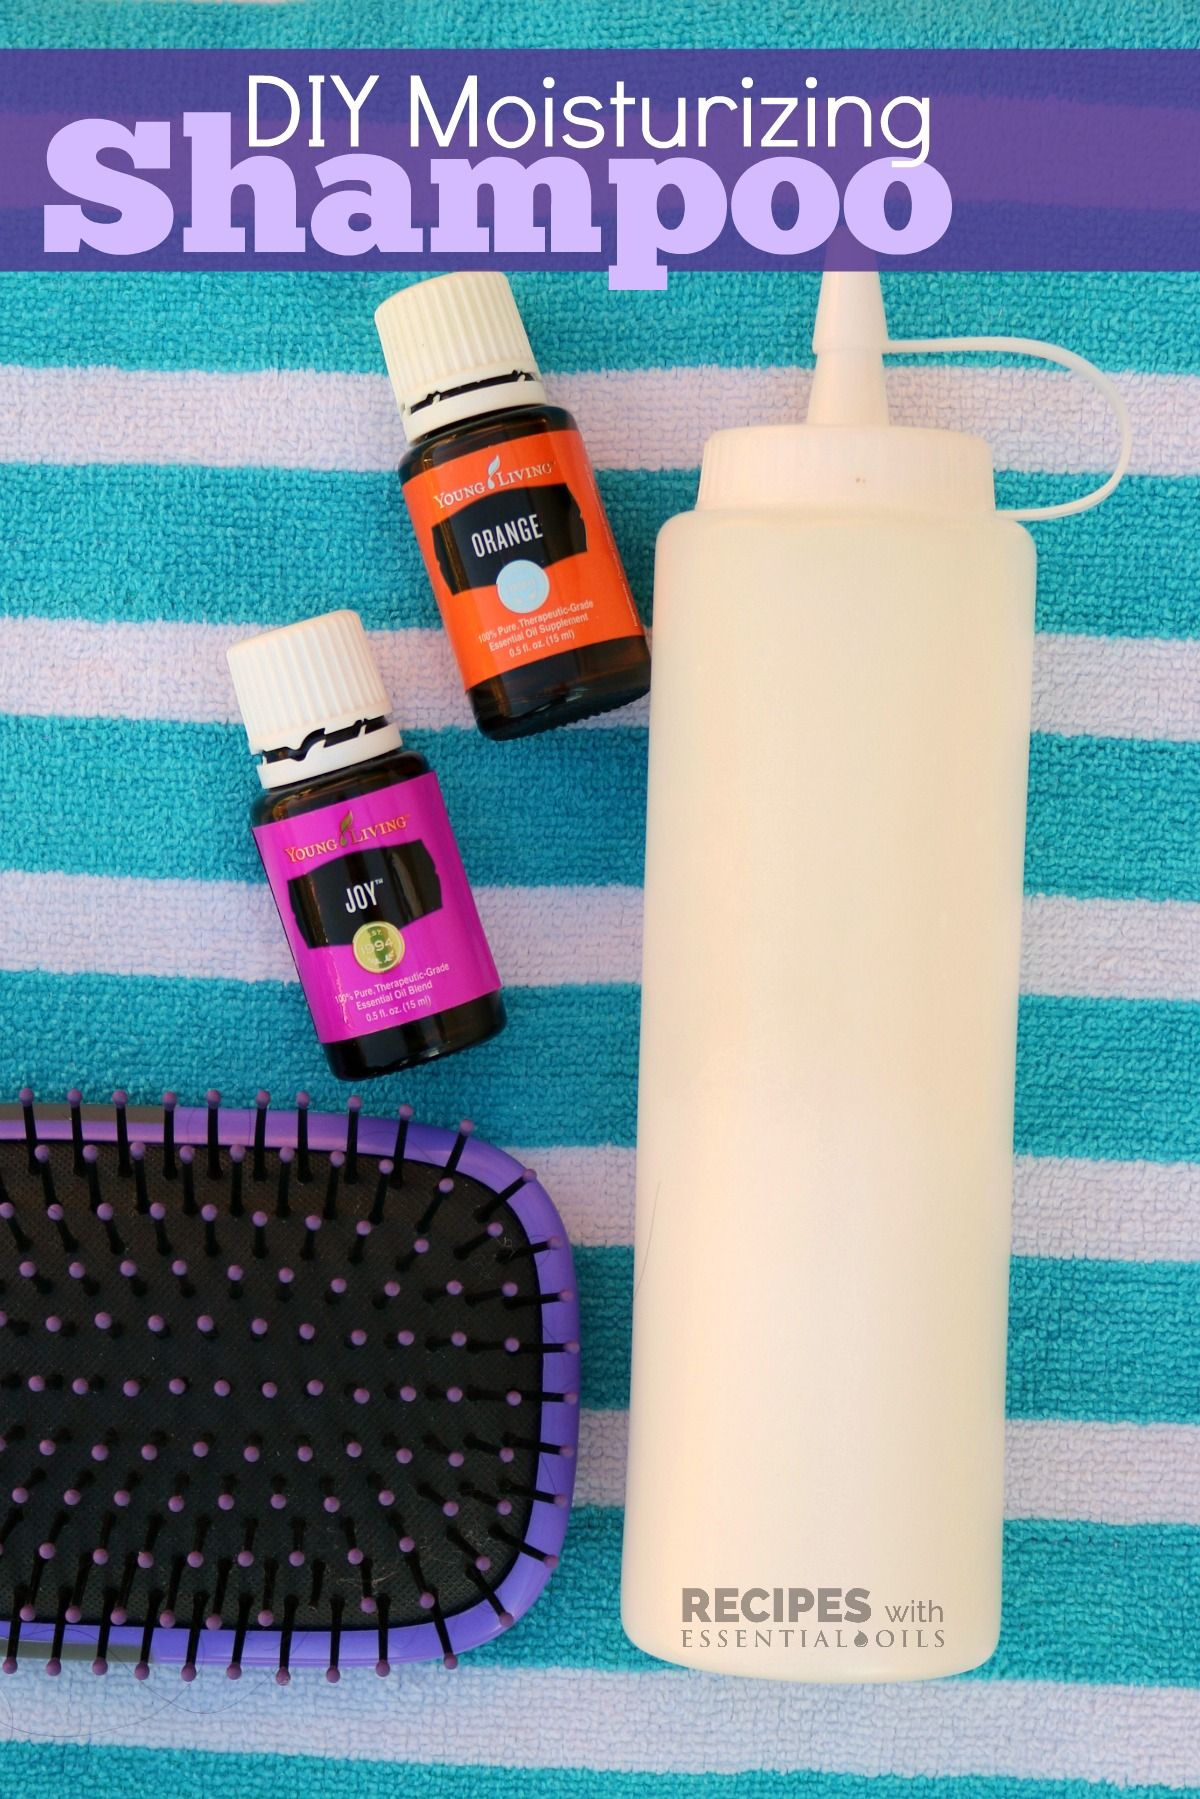 DIY Moisturizing Shampoo - Recipes with